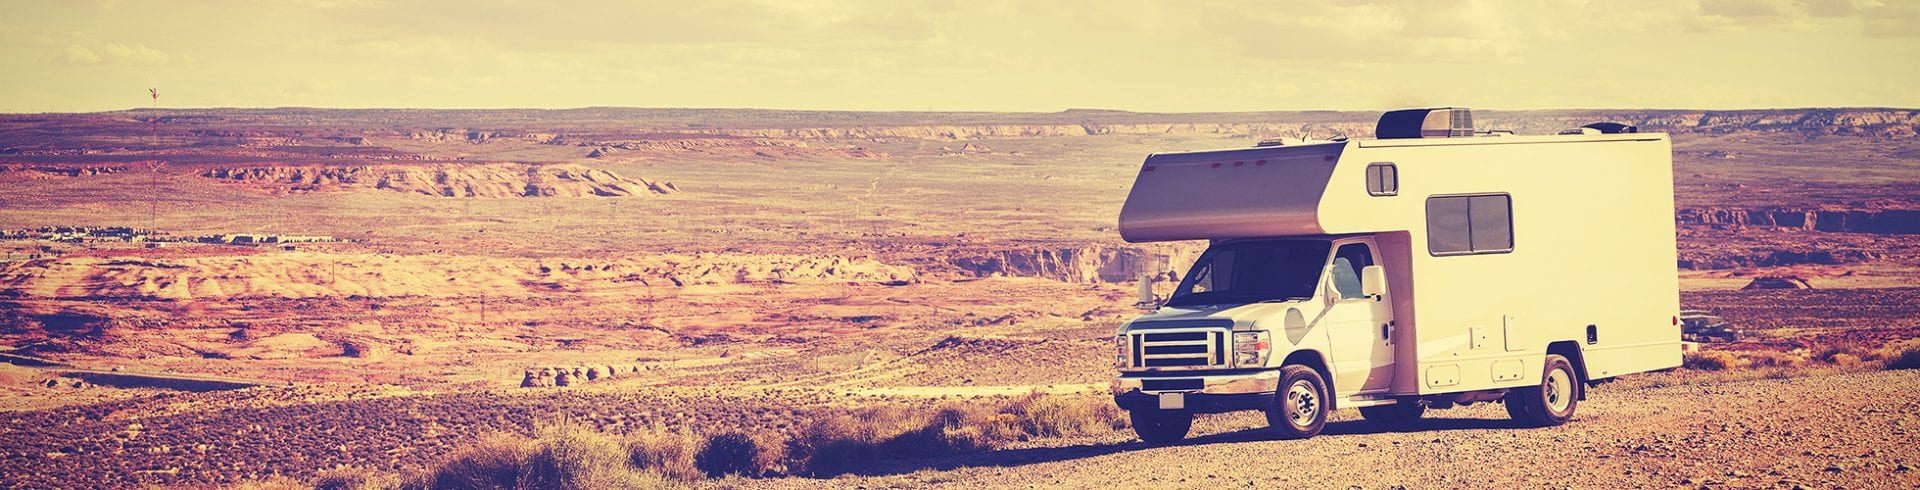 Save Your Vehicle or RV from Mold and Mildew | Blog | Mold Off®